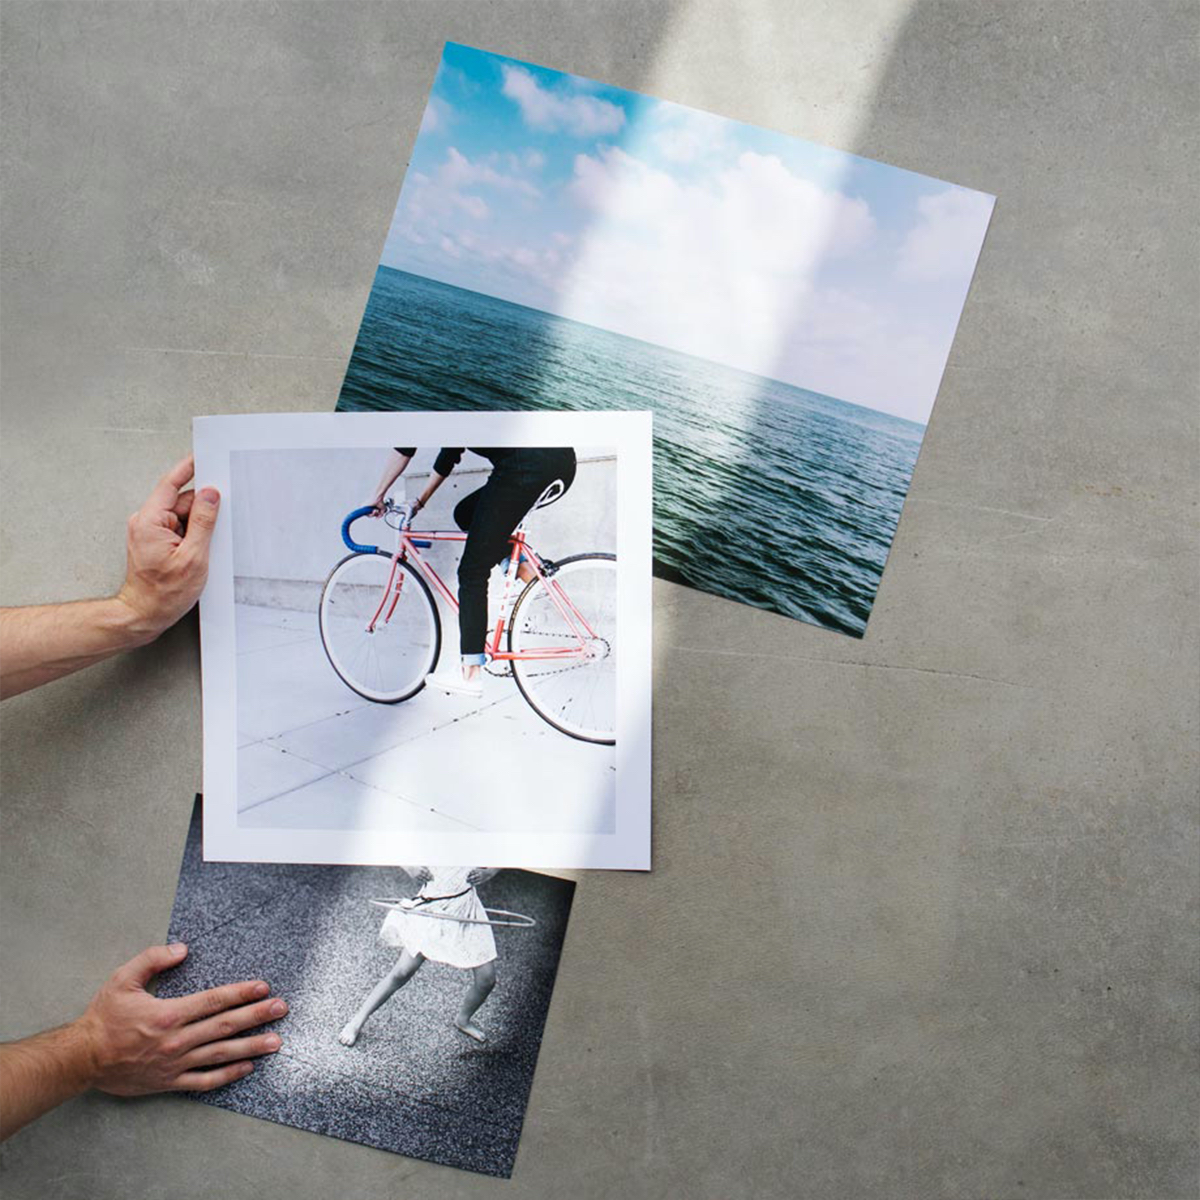 Three giclée prints on surface with ray of light illuminating them